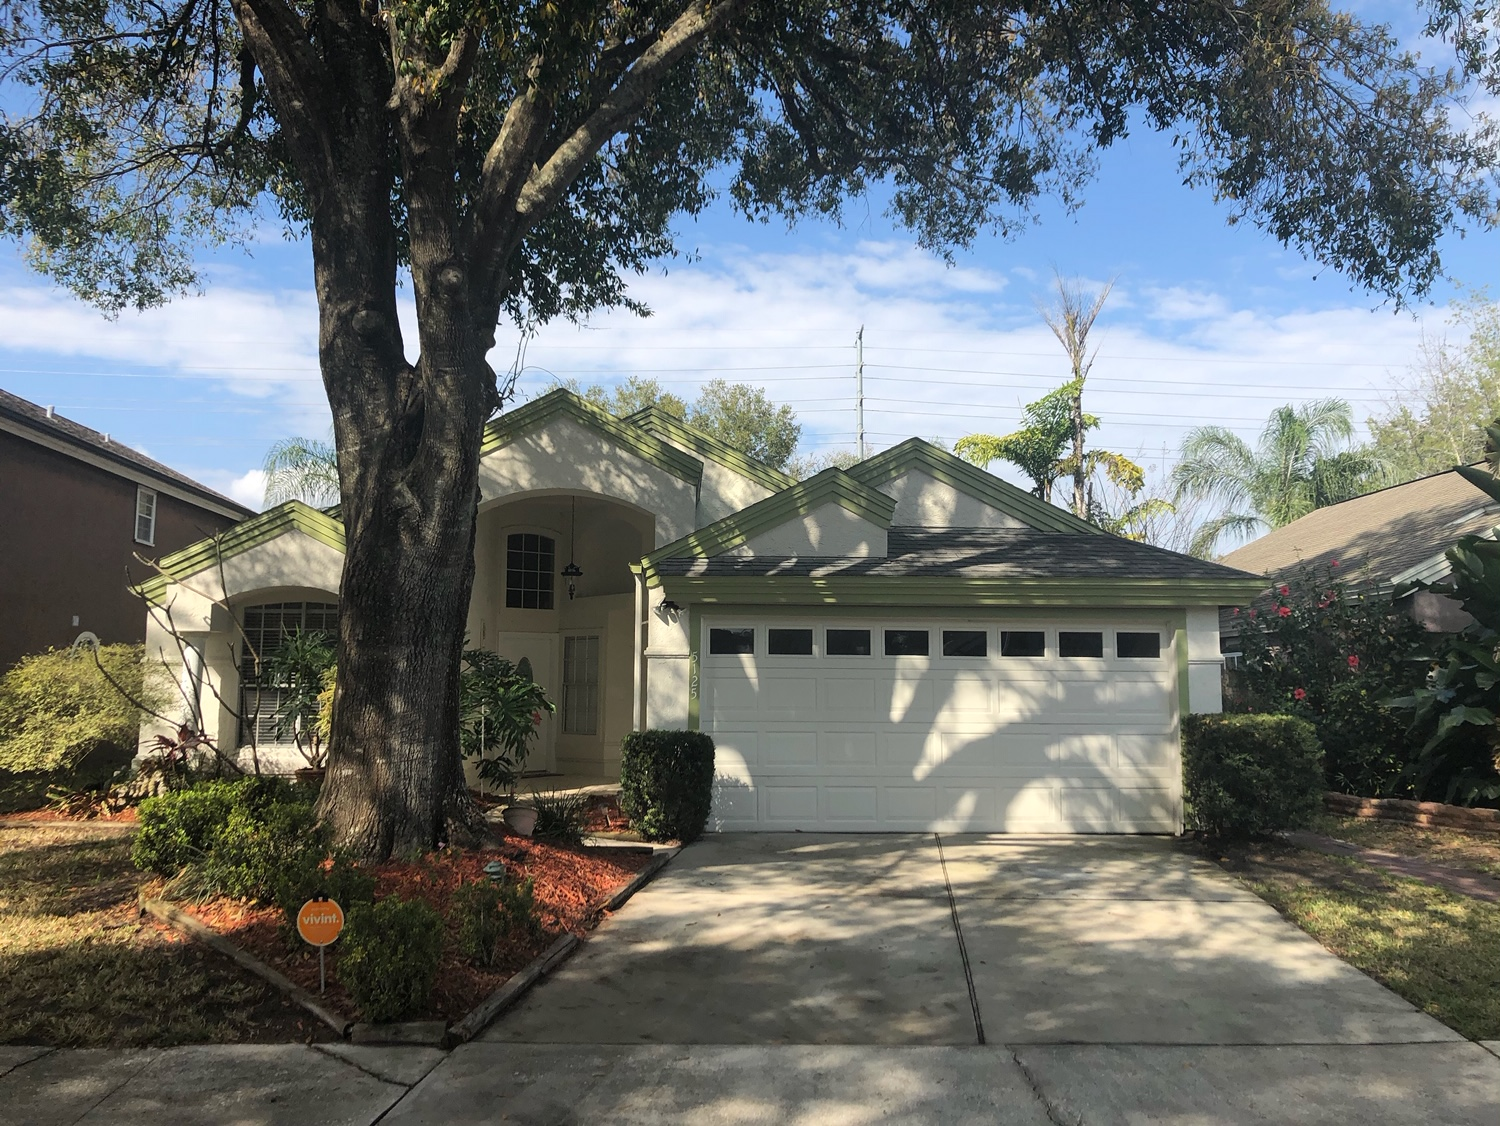 🏠 Coming Soon – 3BD/2BA UPDATED HOME in Orlando, FL 32812! 🌟 Highlights: No Rear Neighbors • Brand New Roof • Updated Kitchen • Laminate Floors • Large Bedrooms • Fully Fenced Backyard • Nearby Downtown Orlando • and much more.Whether you're a first time home buyer or looking for more space, look no further! This stunning POOL HOME is the perfect place to call home!